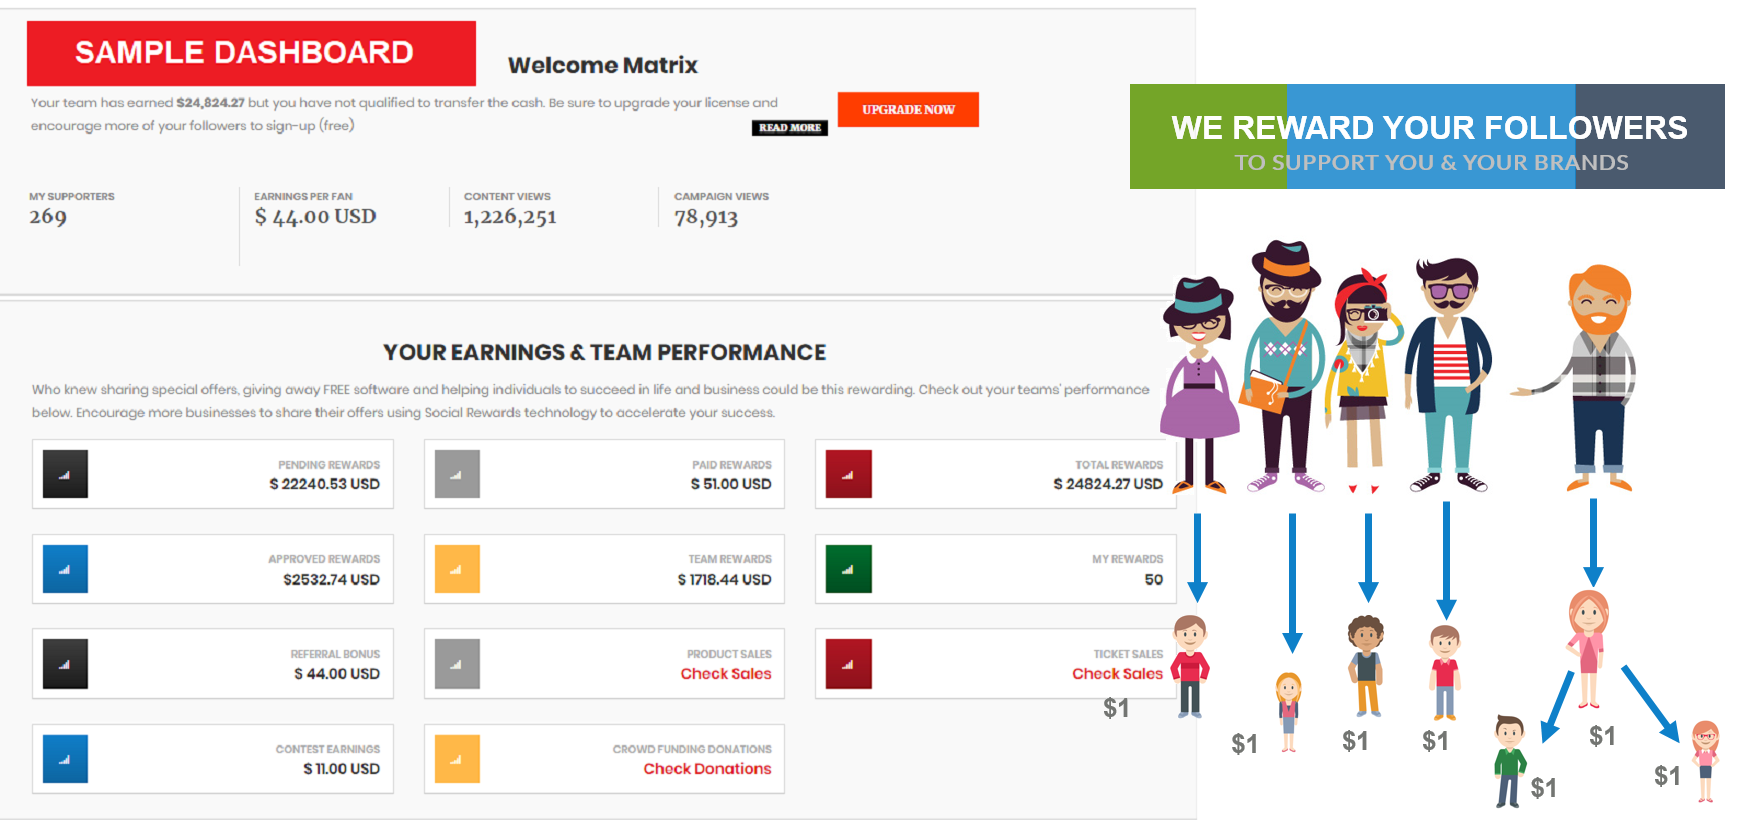 new-dashboard1600.png